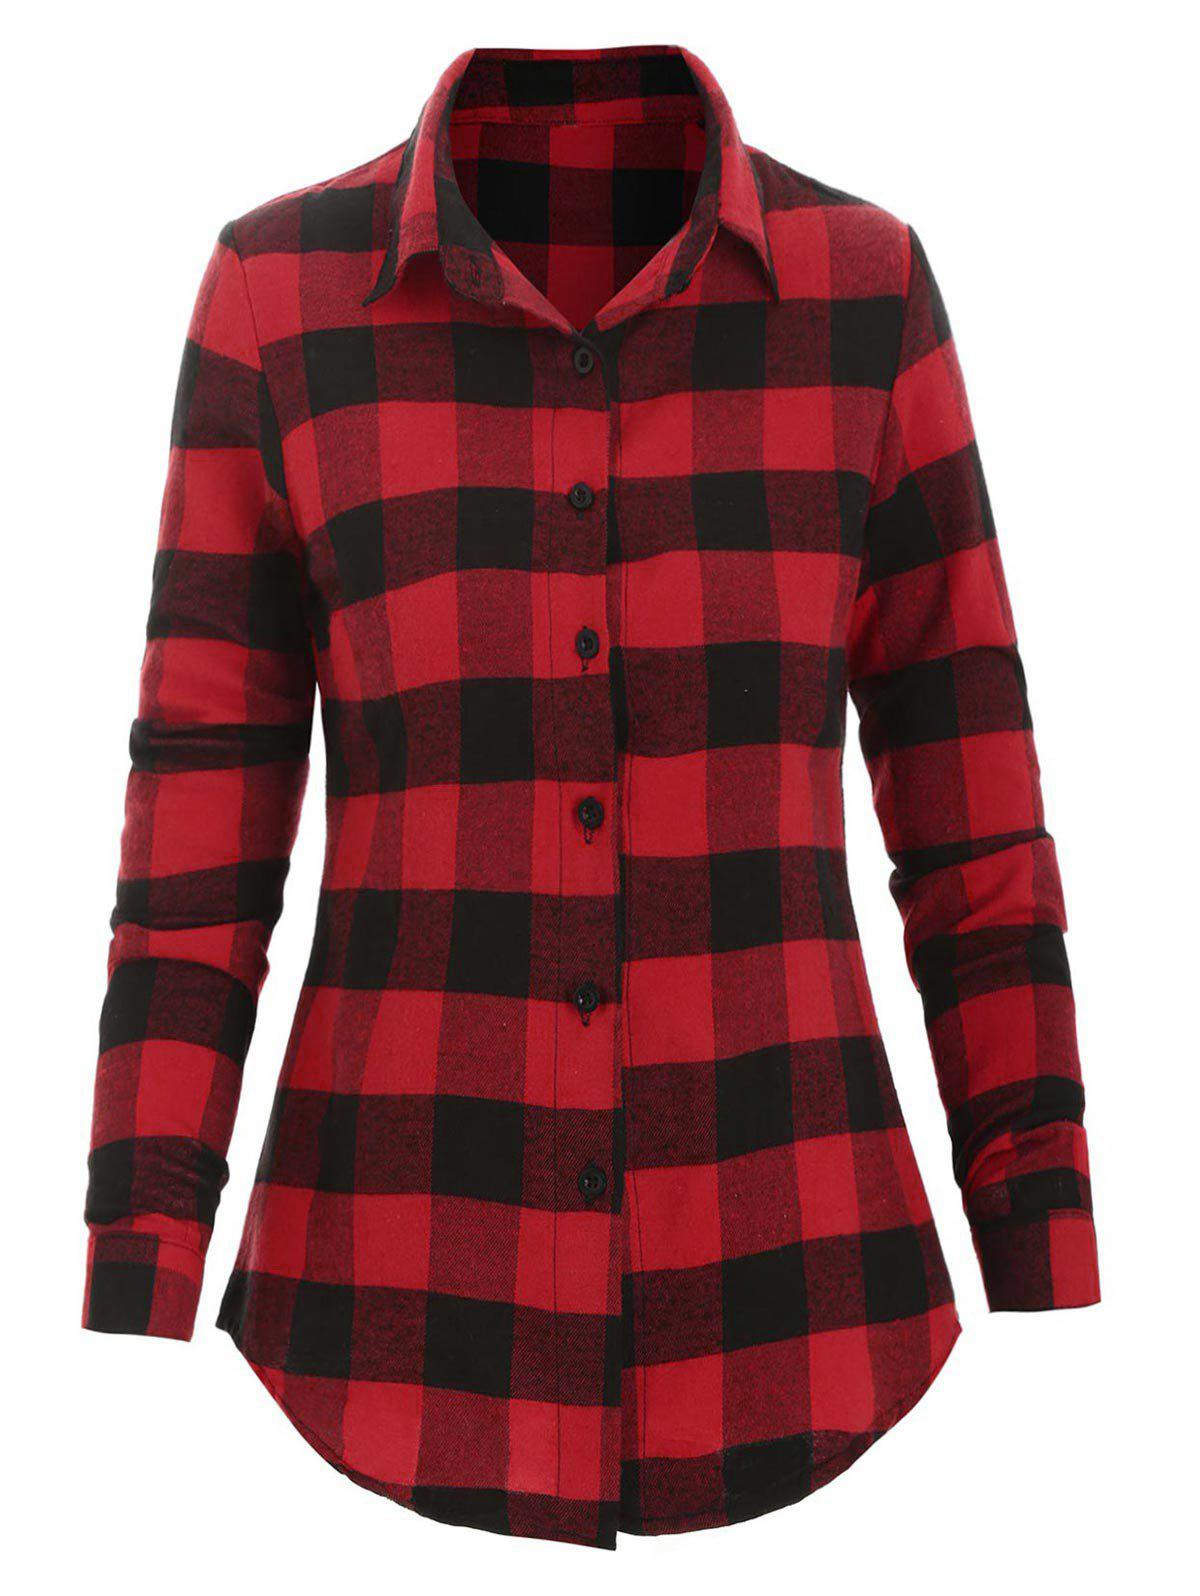 Chic Plaid Button Up Fitted Shirt